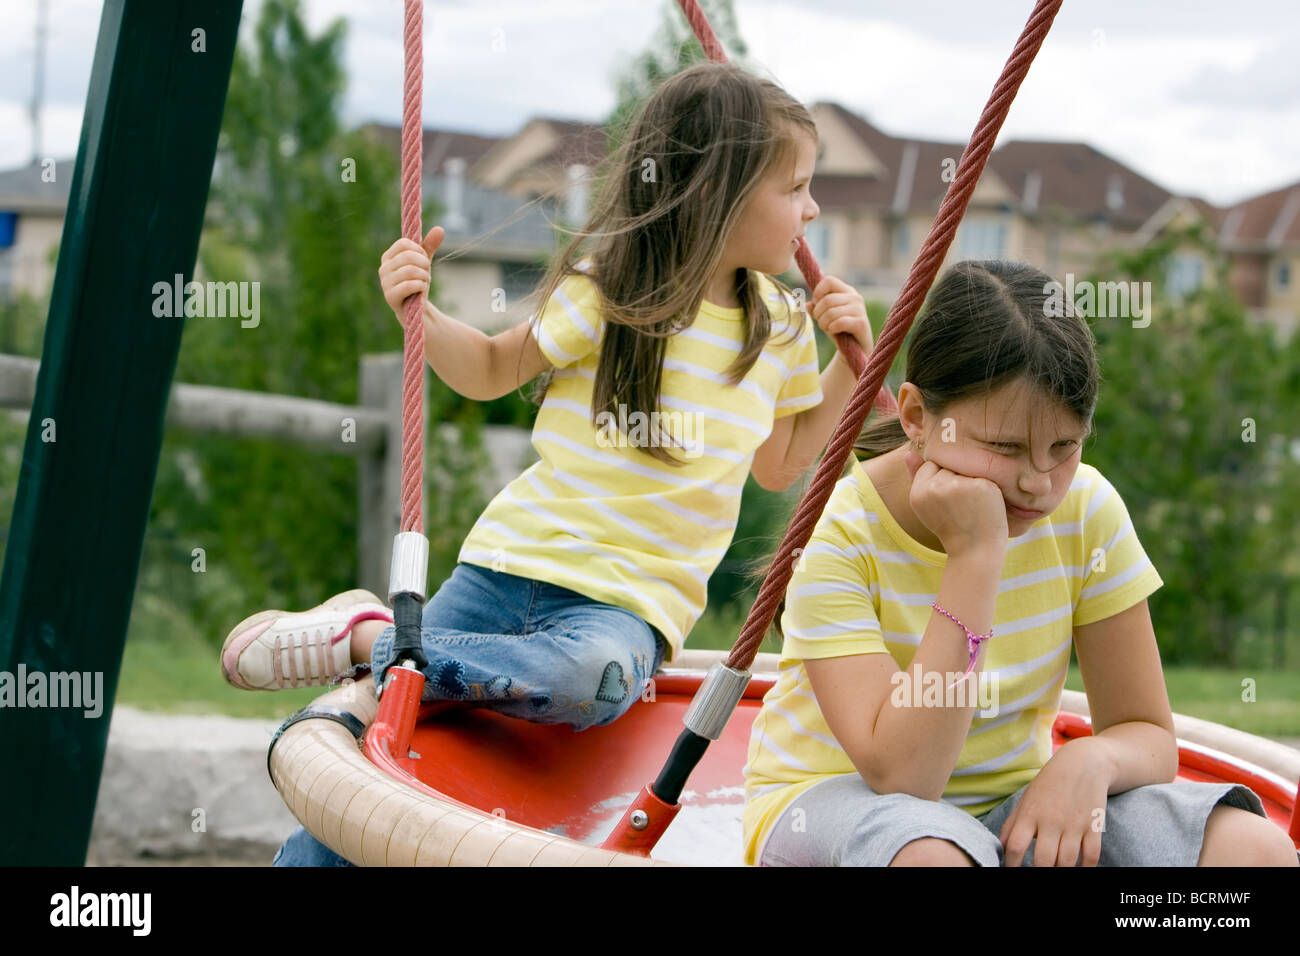 2 sisters on swing - Stock Image